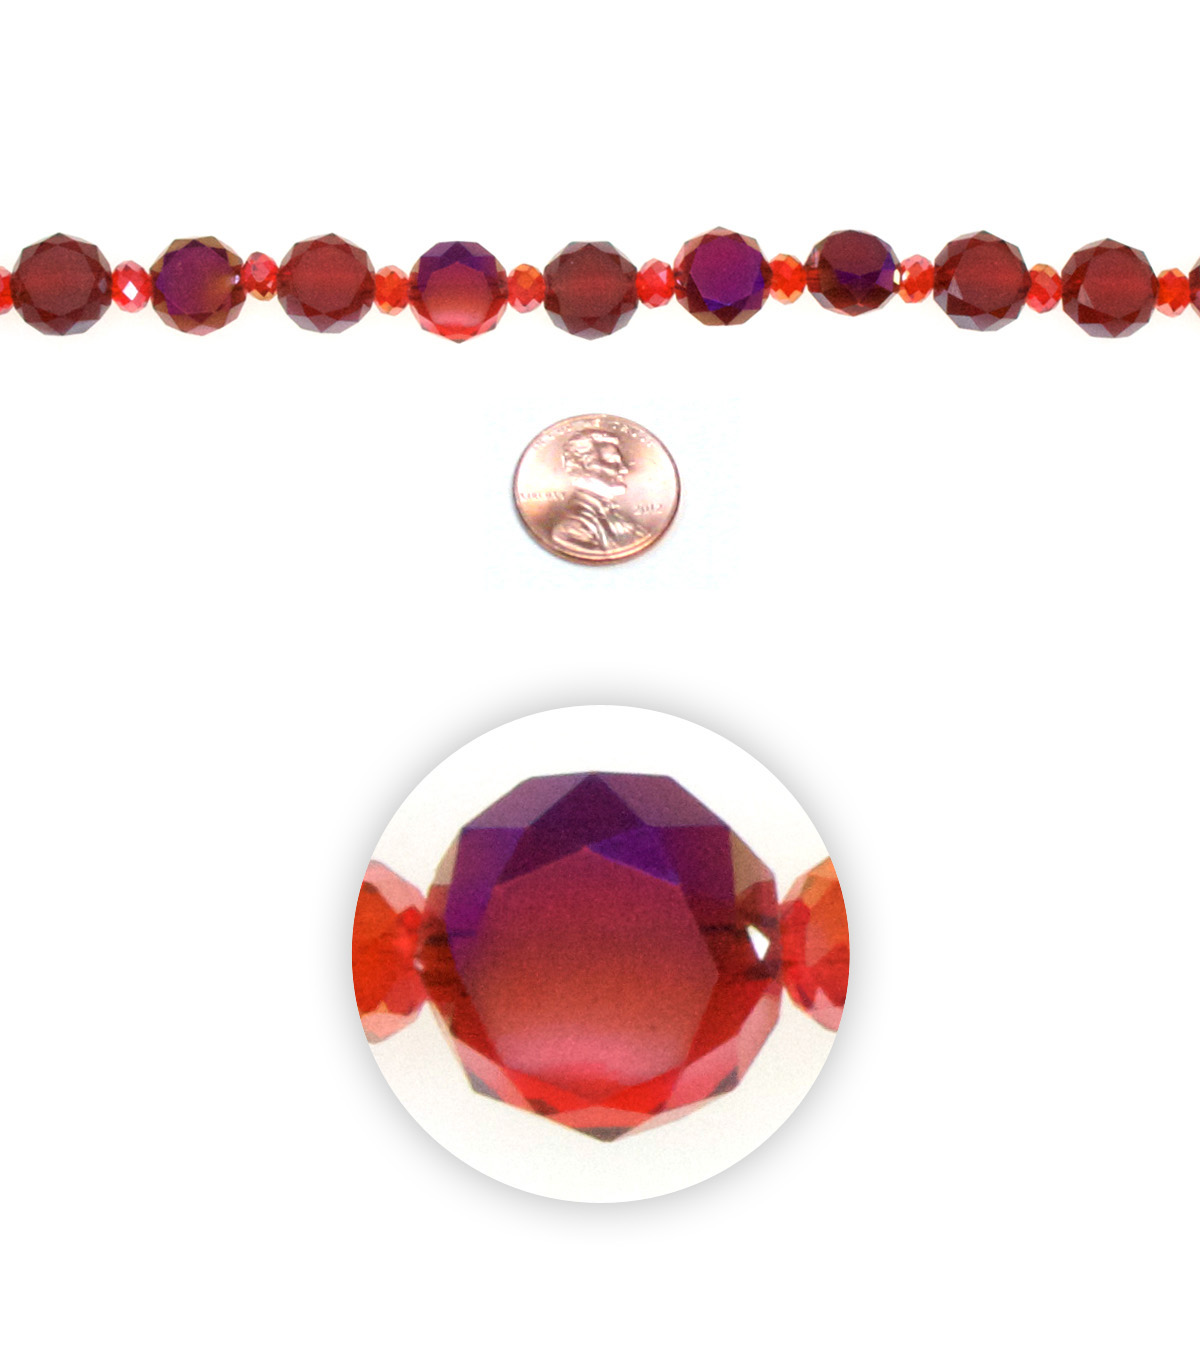 Advantus/Sulyn Terra Crystalline Bead Strand, Fireball